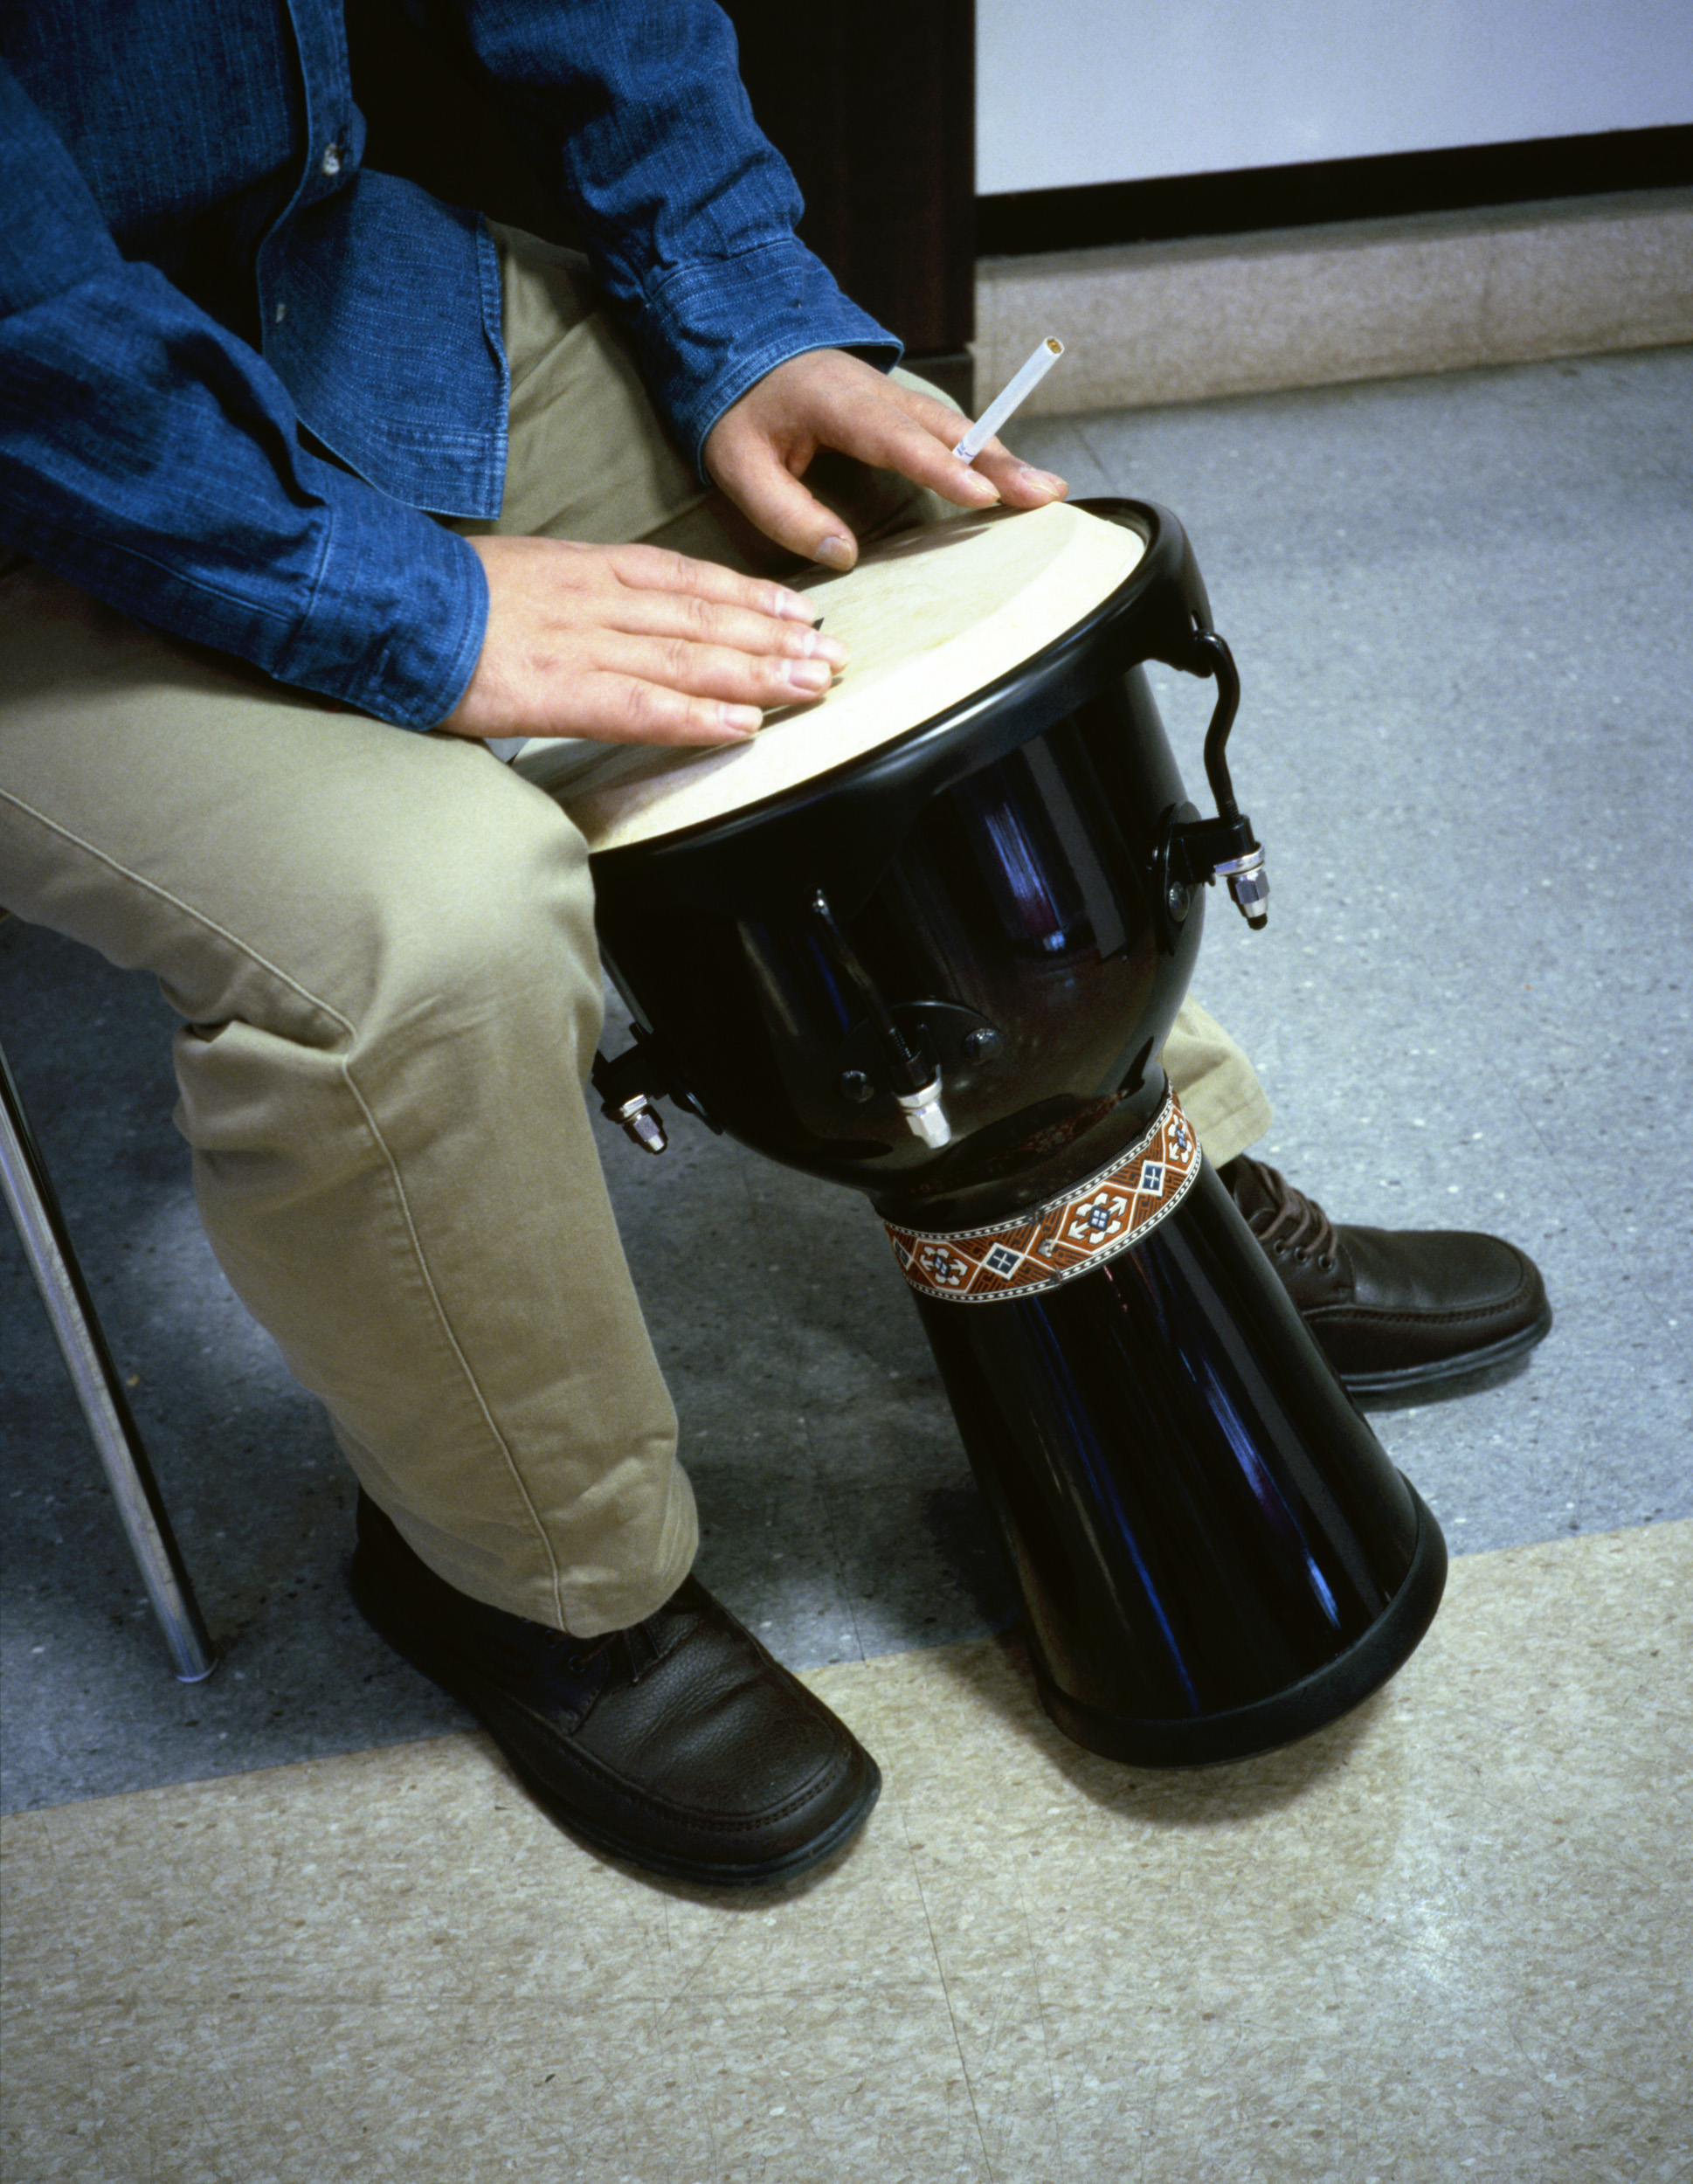 Untitled Production Still (Bongo Player's Hands)  2005, colour photograph 76 x 58 cm / 30 x 23 in.